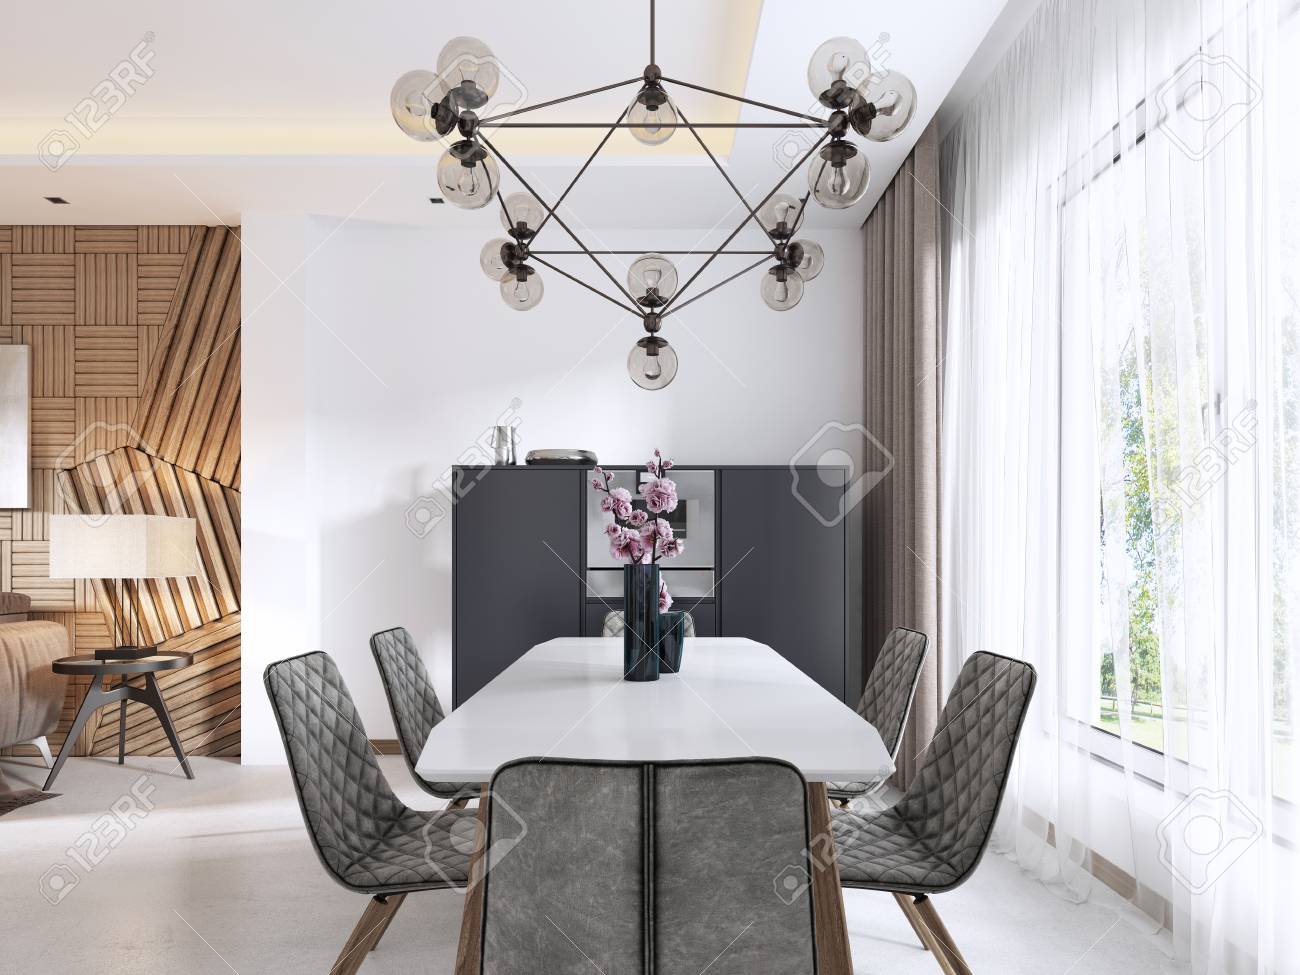 Dining Room In Contemporary Style With Modern Chairs And A Table